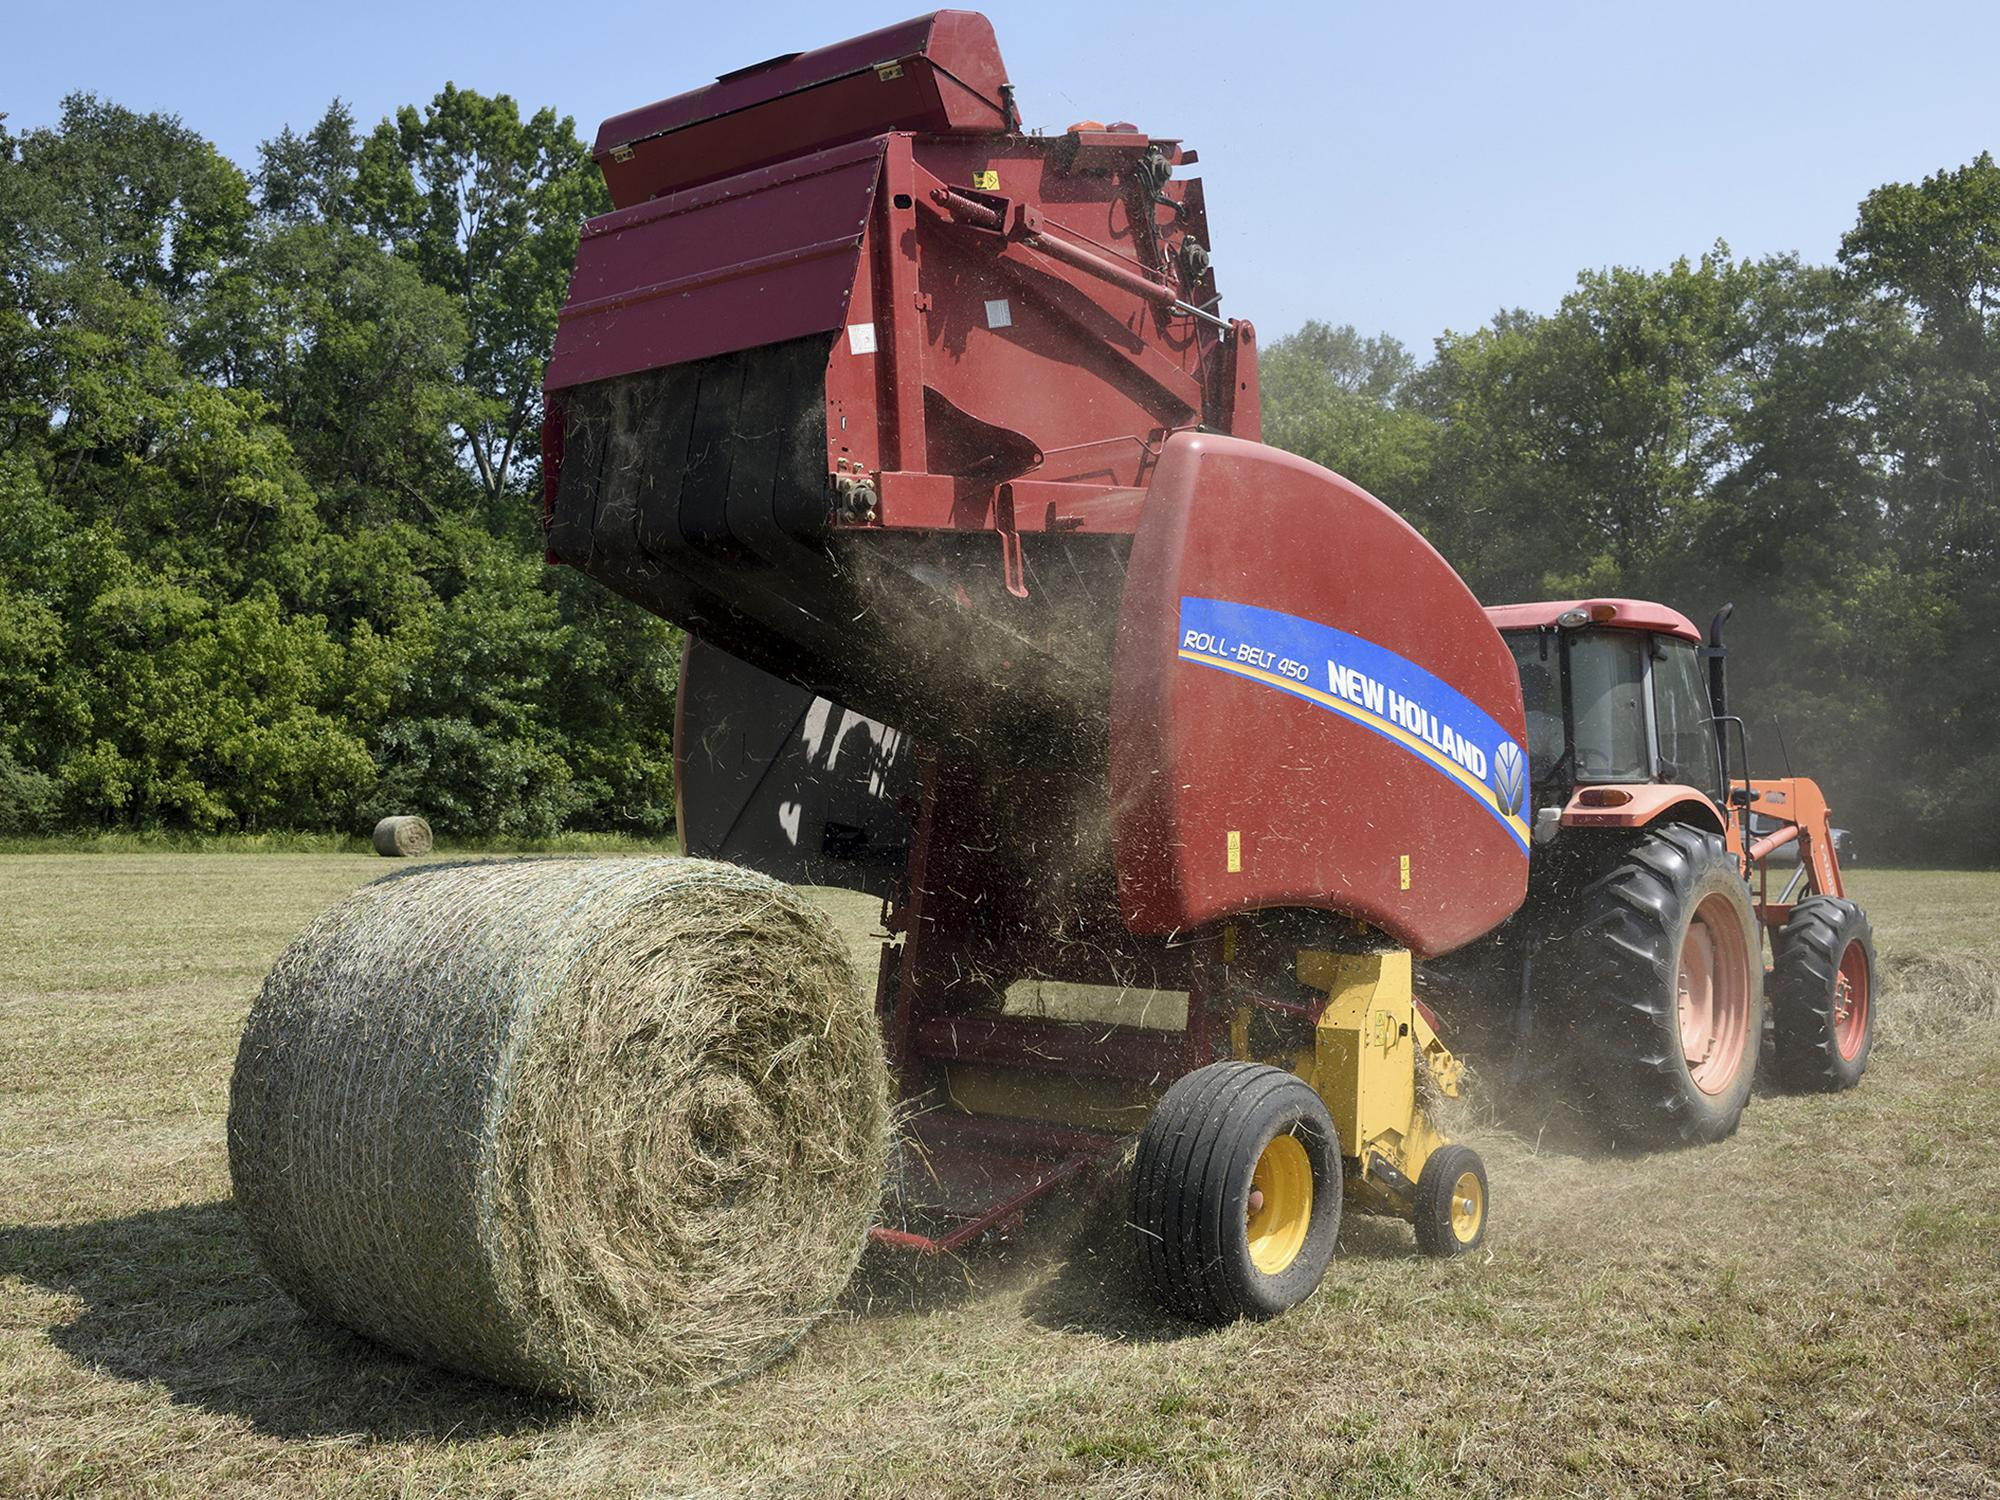 A red baler hitched to the back of an orange tractor drops a new, round bale of hay into a field.